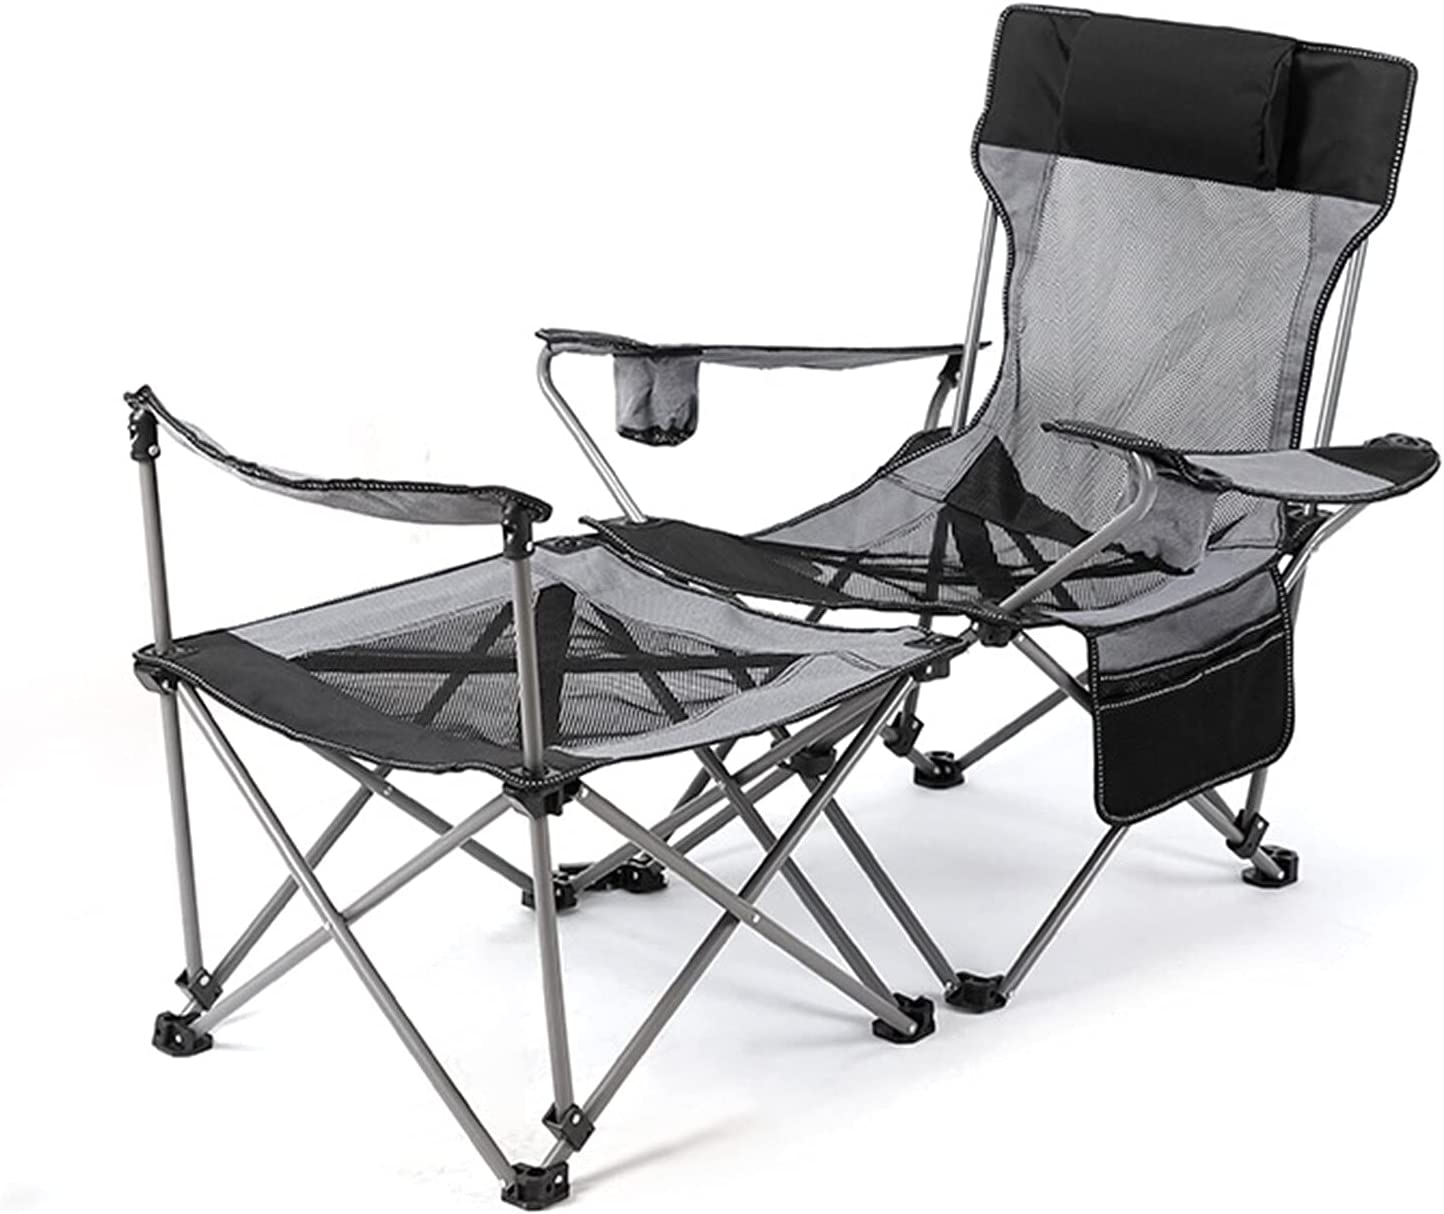 FFYY Camping Chair Portable Outdoor Max 62% OFF Folding Portab Easy-to-use